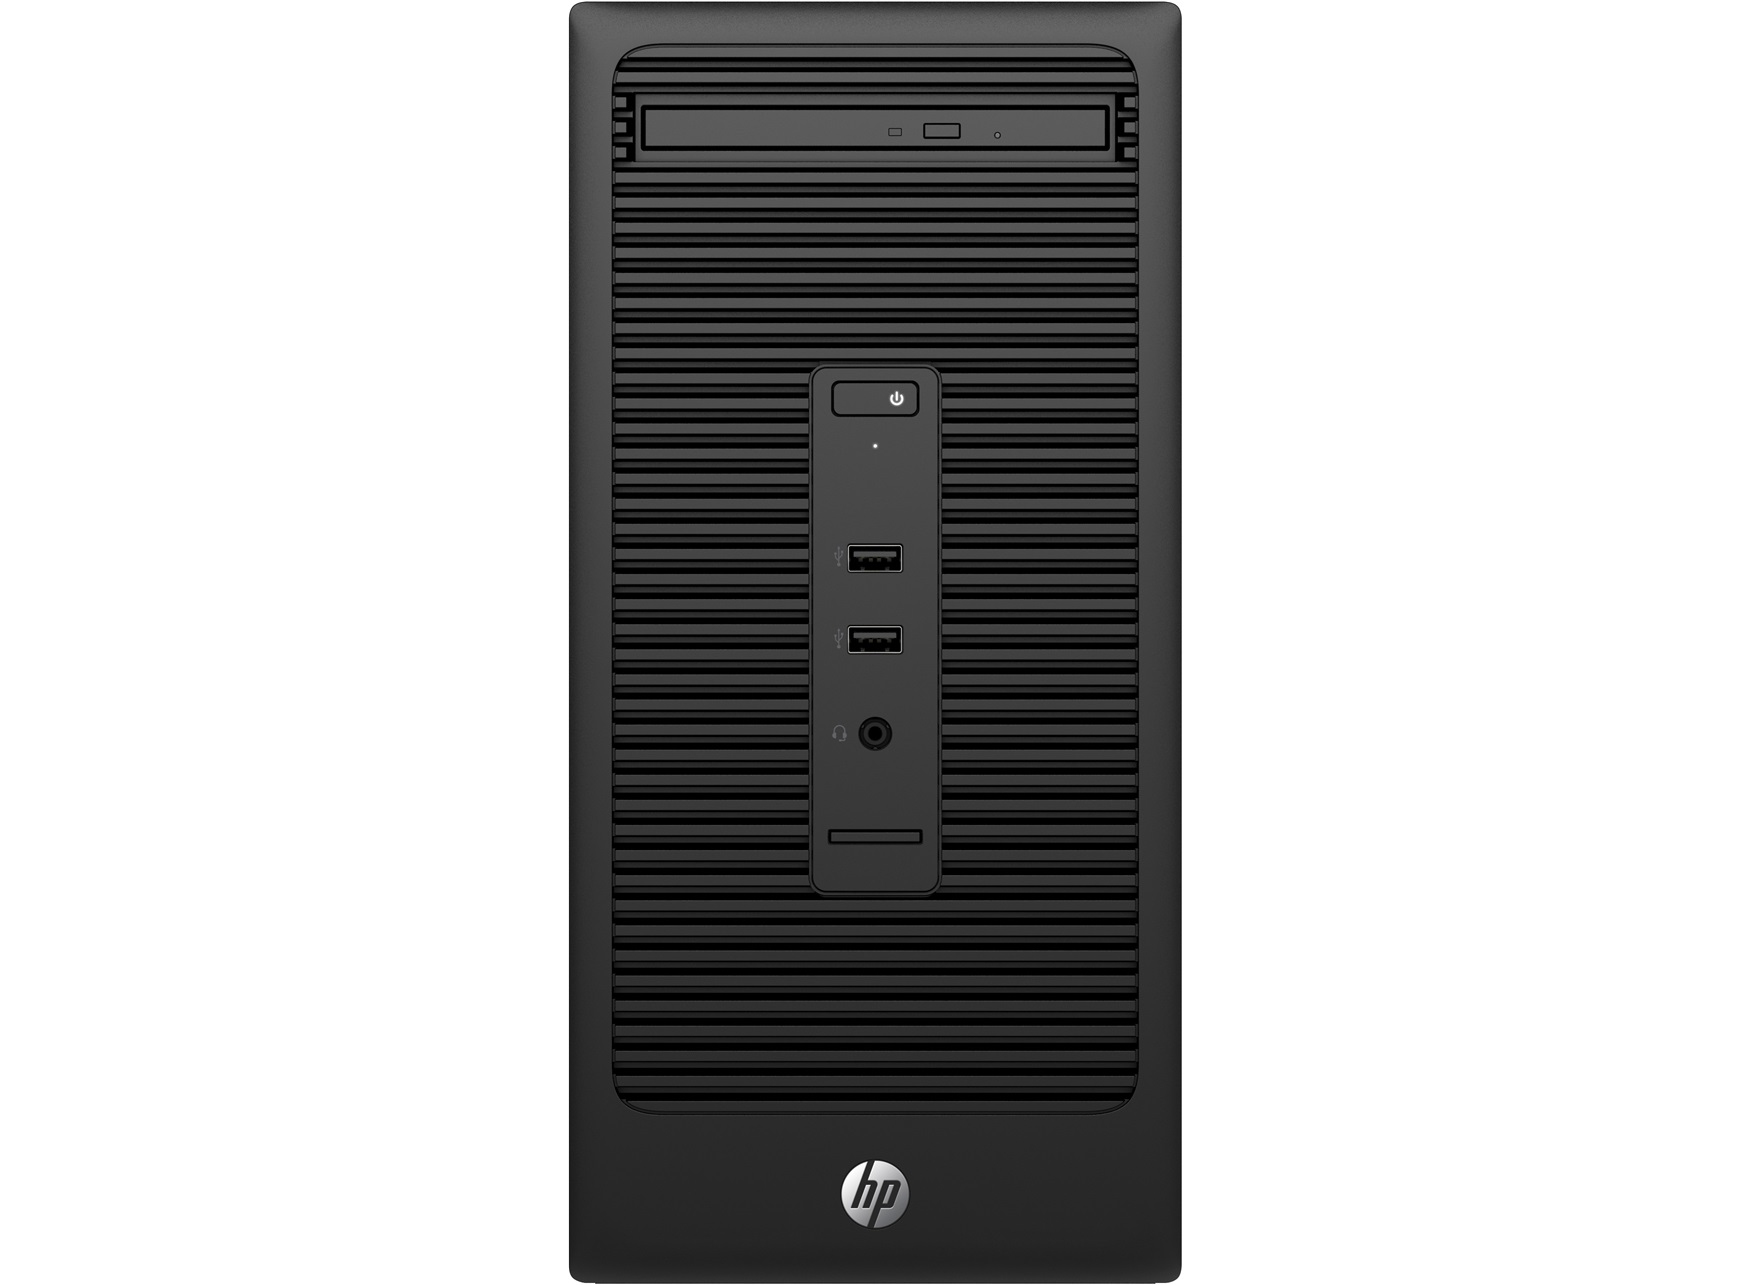 HP 200 280 G2 MT 3.7GHz i3-6100 Micro Tower Black